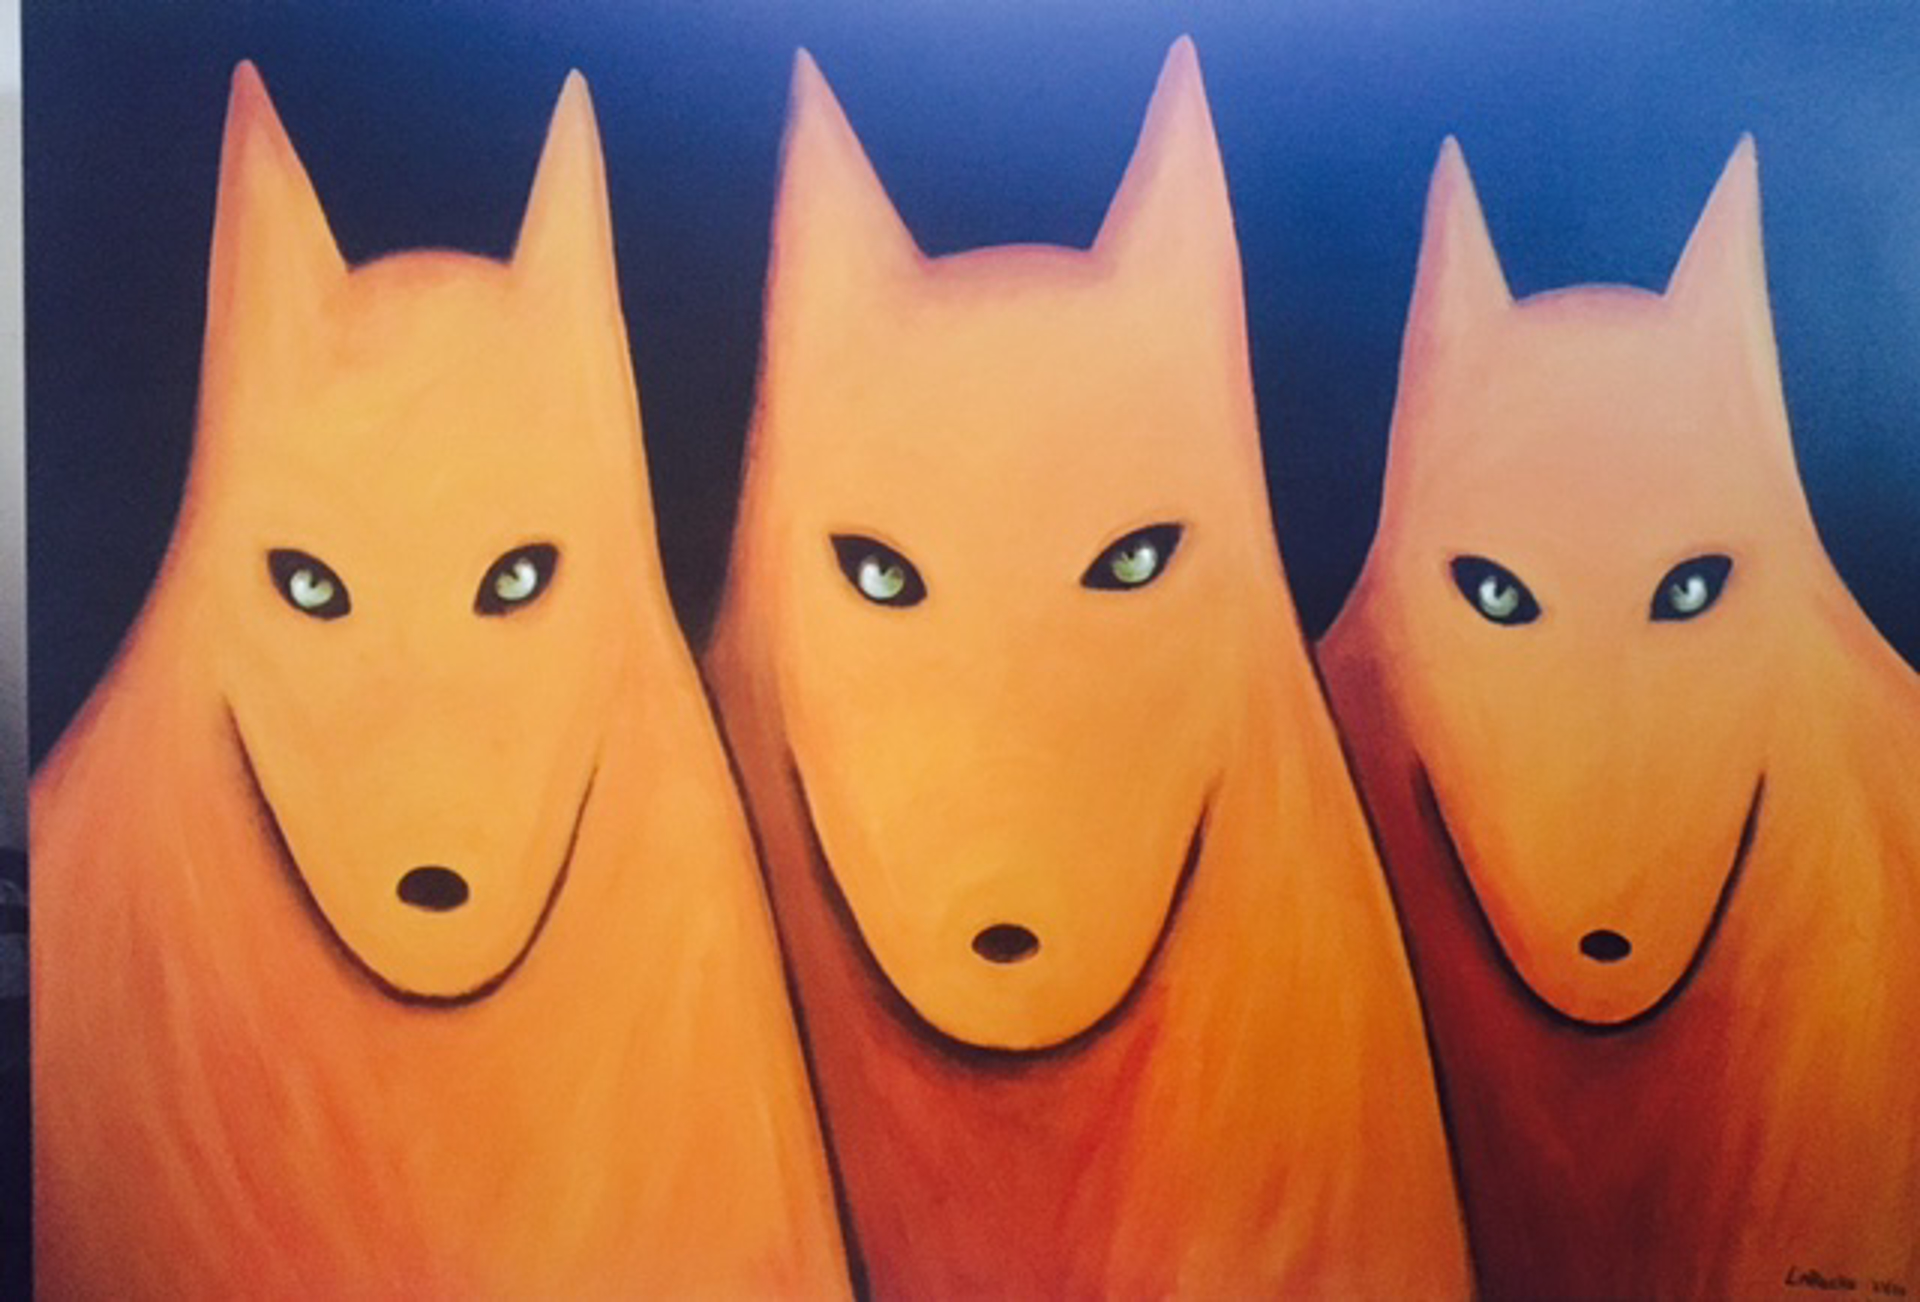 """NIGHT SKY/THREE GOLDEN WOLVES - limited edition giclee on canvas: (large) 40""""x60"""" $3500 or (medium) 30""""x40"""" $2200 by Carole LaRoche"""